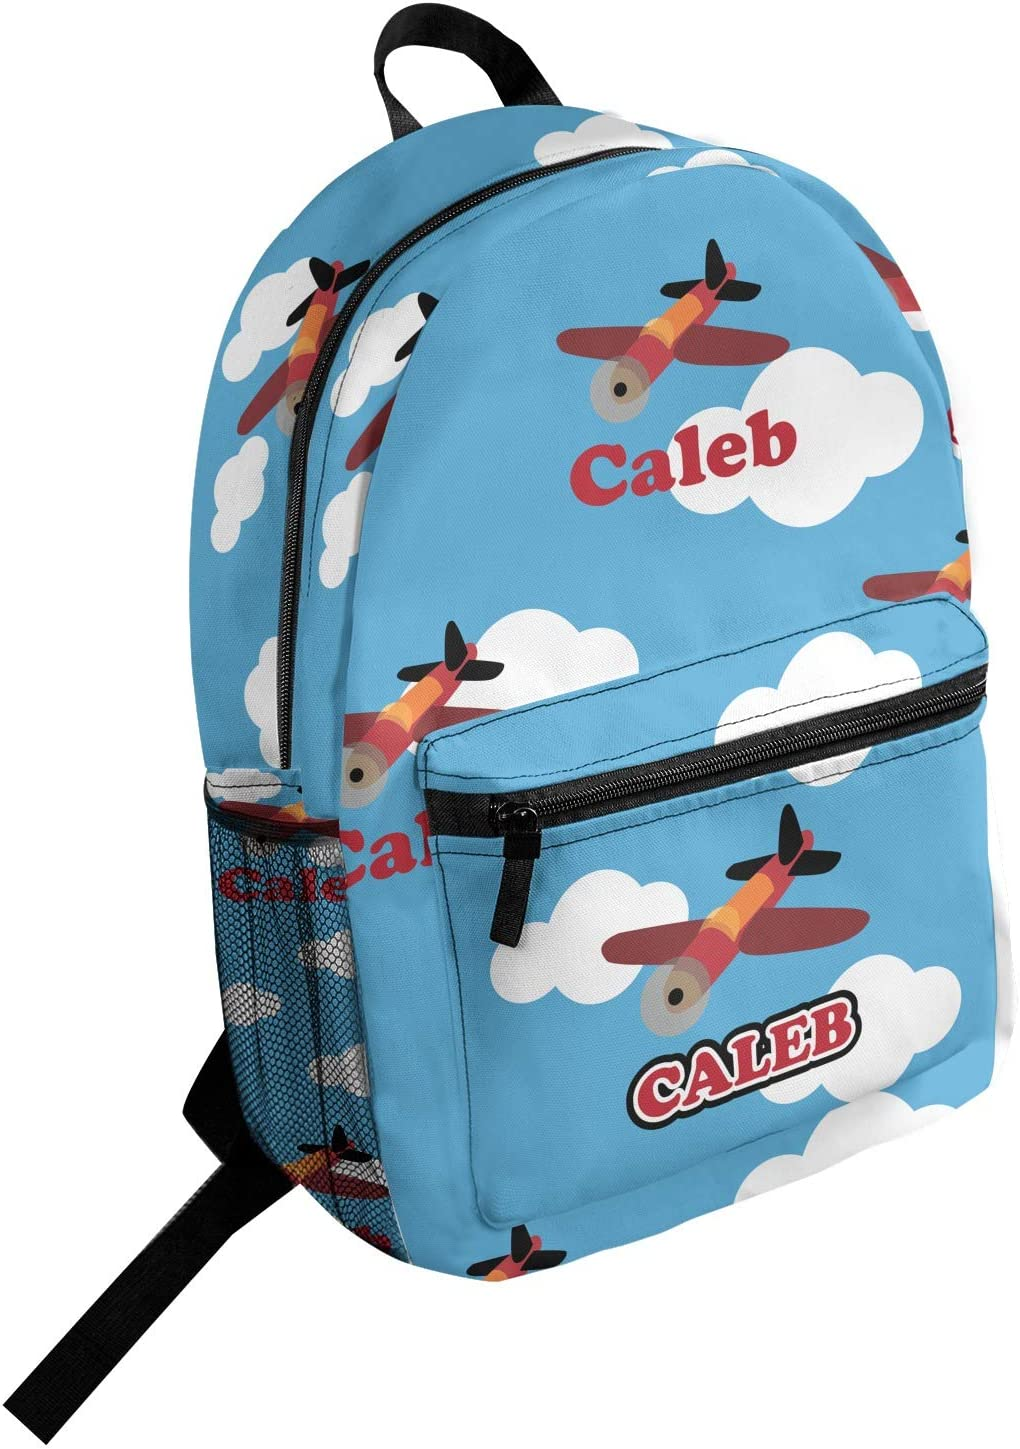 Airplane Student Backpack Personalized